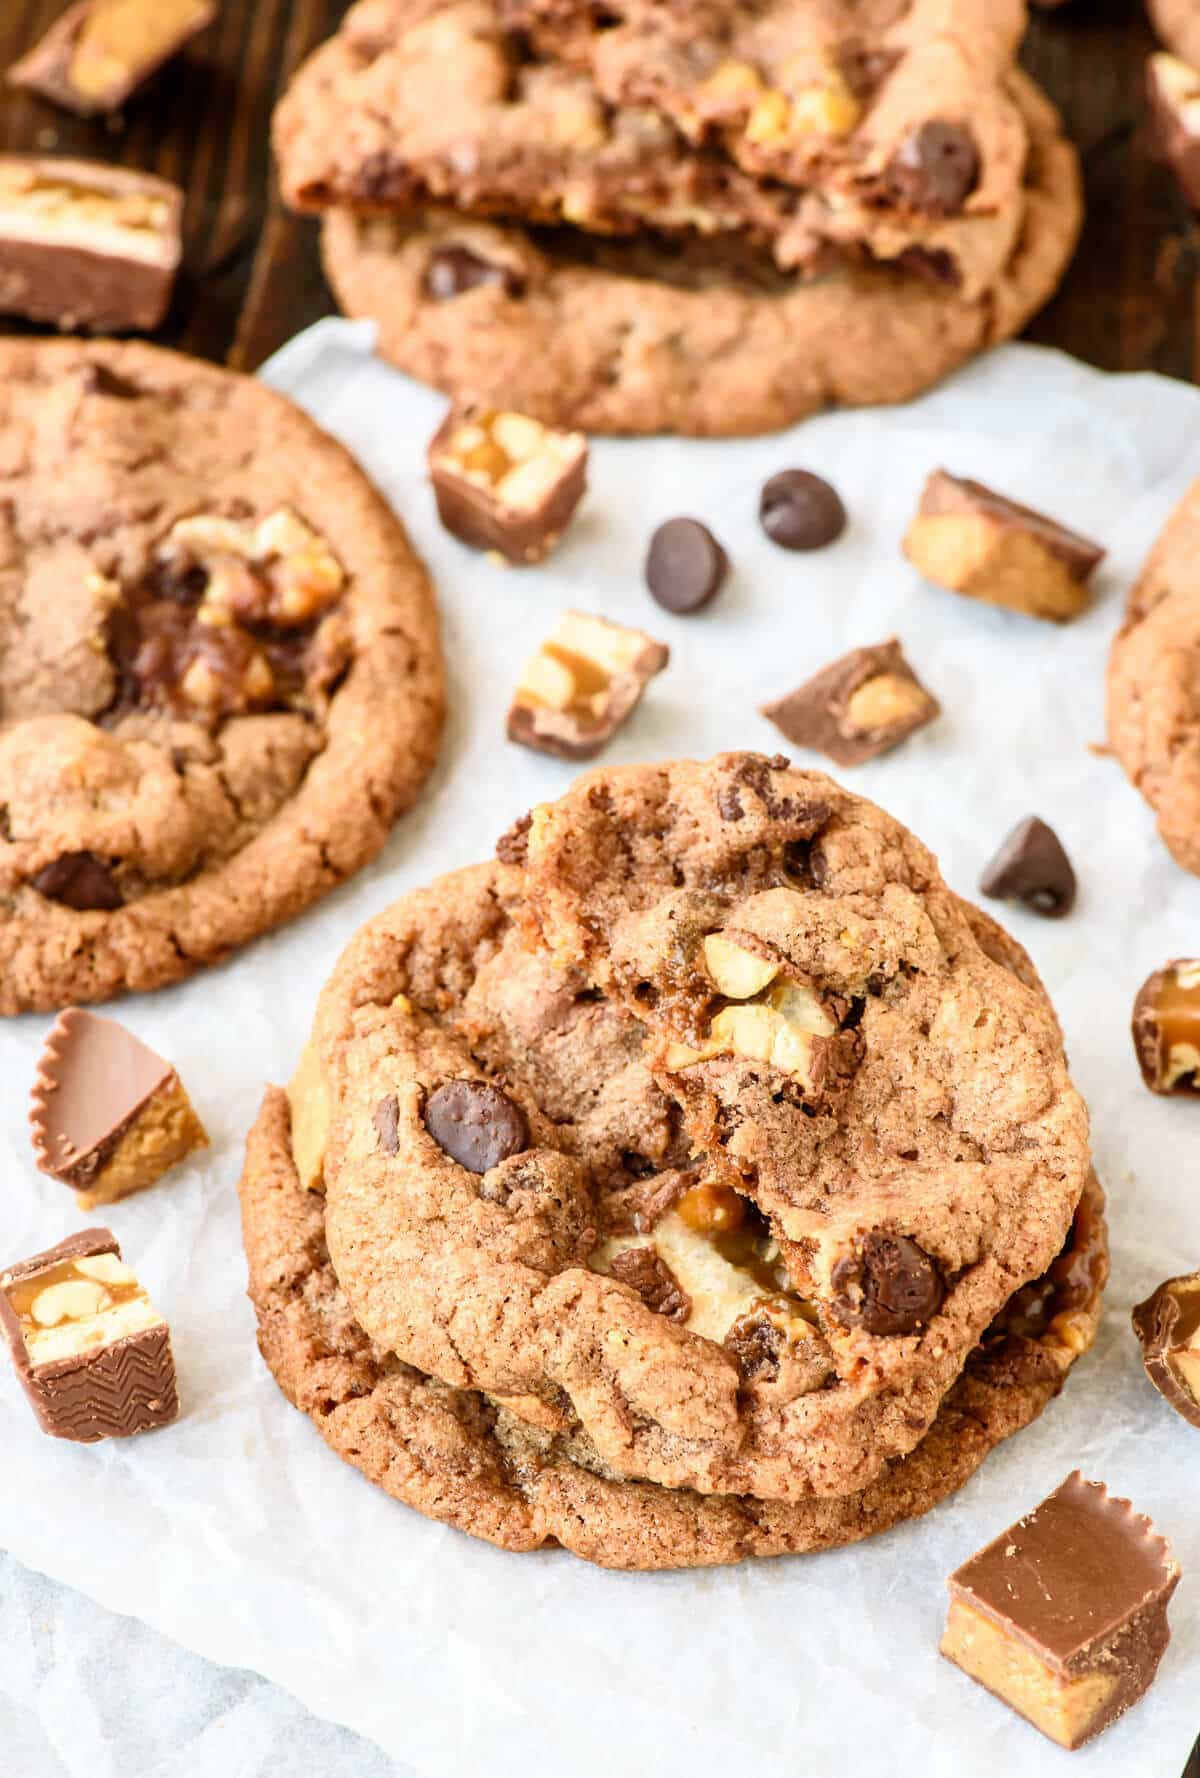 Soft and Chewy Peanut Butter Snickers Cookies. Reeses peanut butter cups and Snickers bars baked into soft, chewy cookies that are loaded with chocoalte chips! Perfect for leftover candy